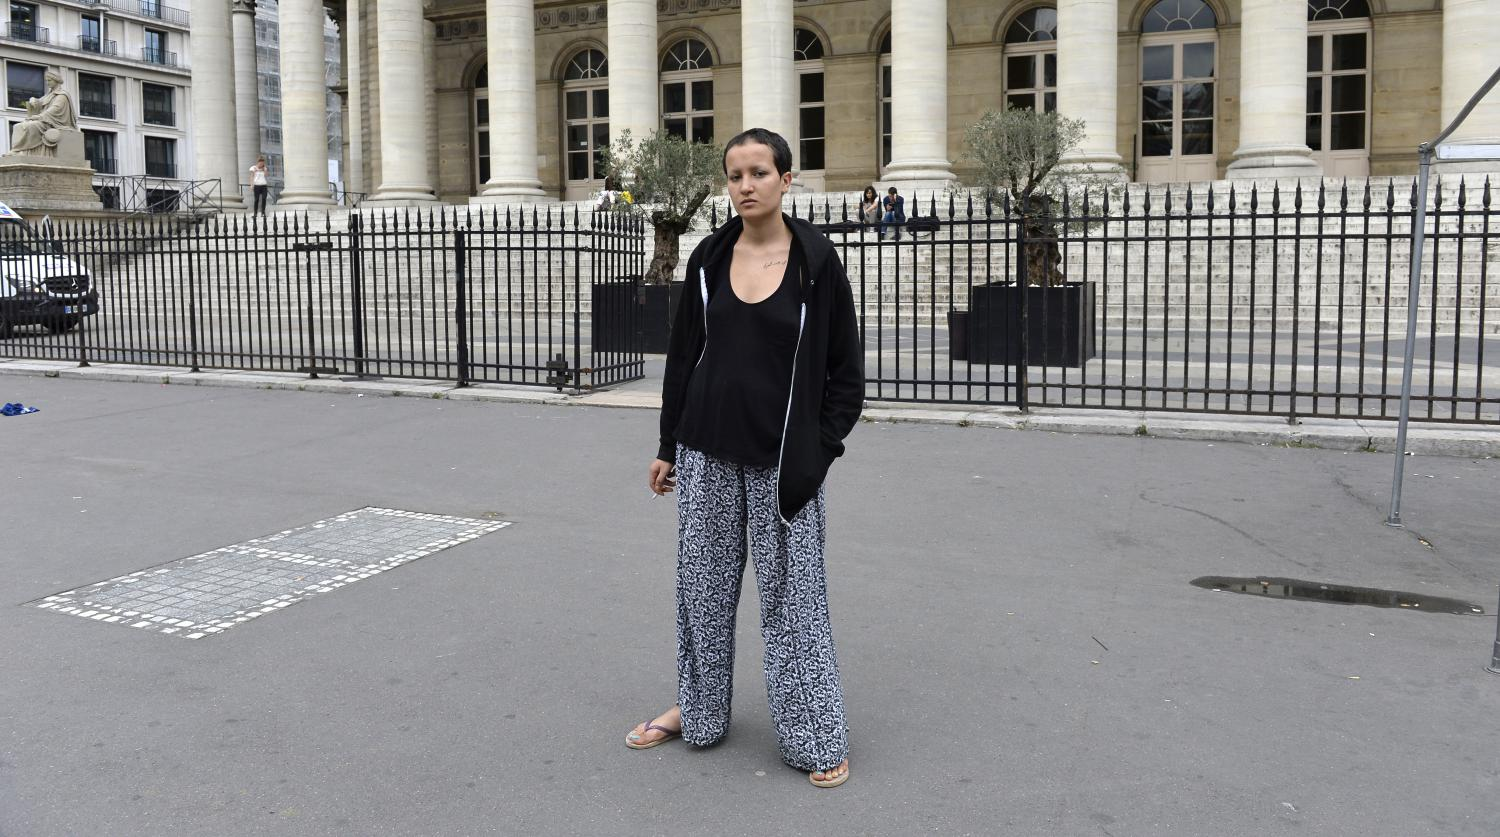 l 39 ex femen amina porte plainte pour agression paris. Black Bedroom Furniture Sets. Home Design Ideas